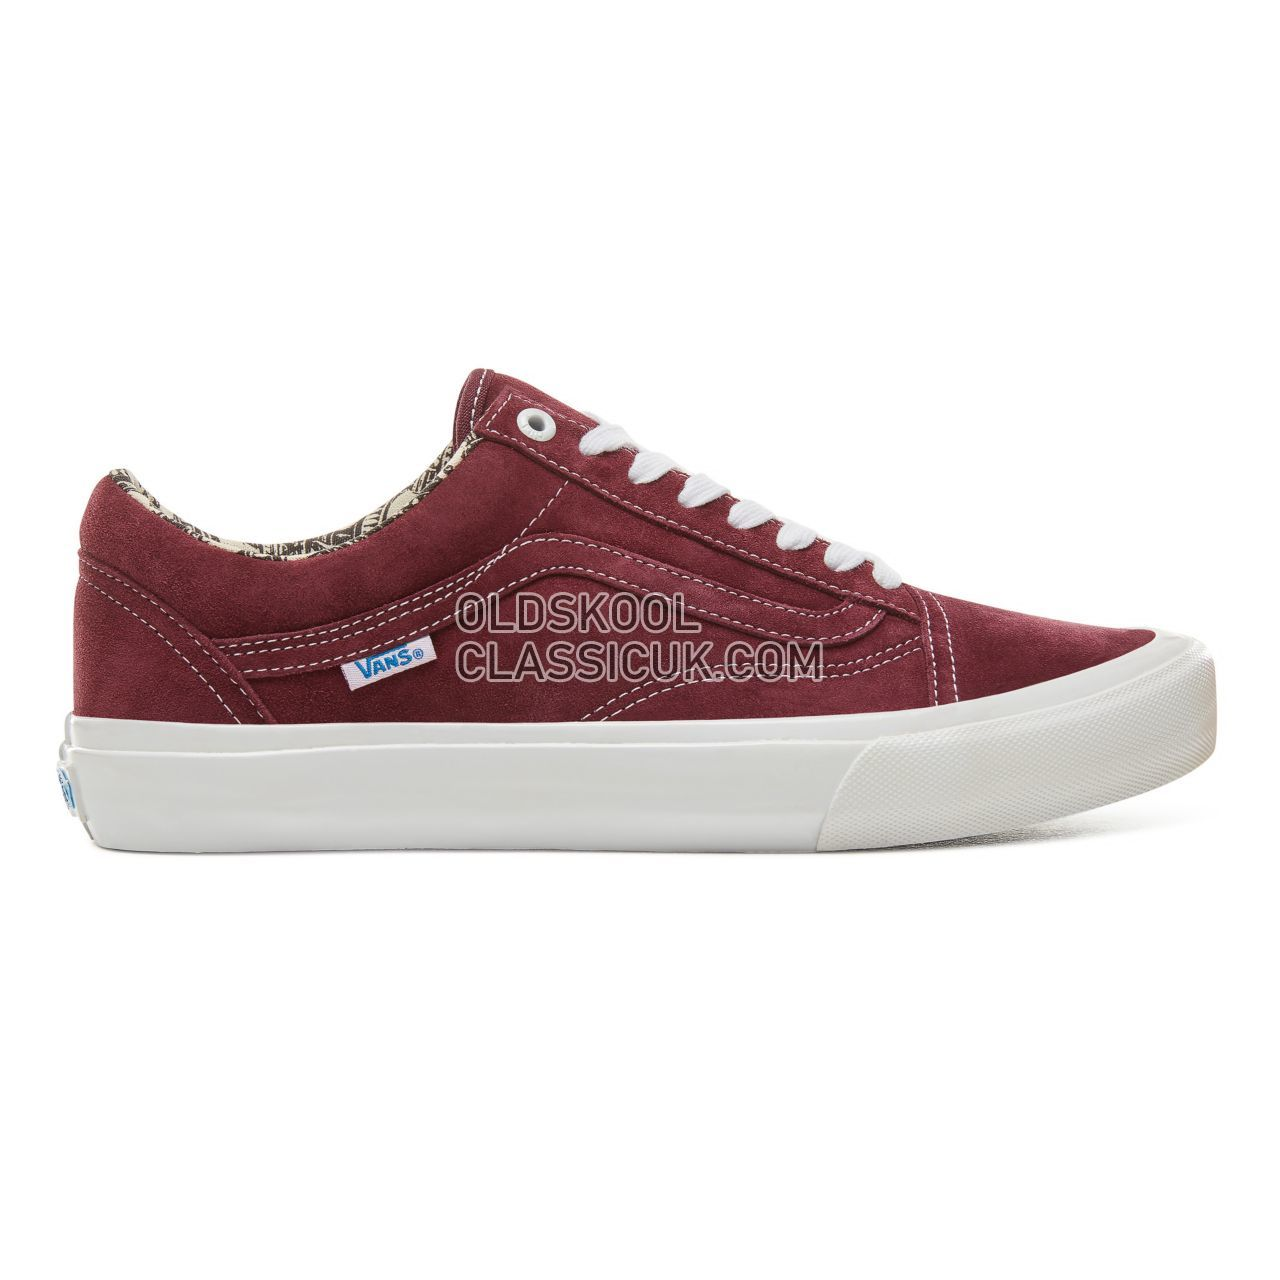 Vans Ray Barbee Old Skool Pro Sneakers Mens Womens Unisex (Ray Barbee) Og Burgundy V00ZD4U1Z Shoes